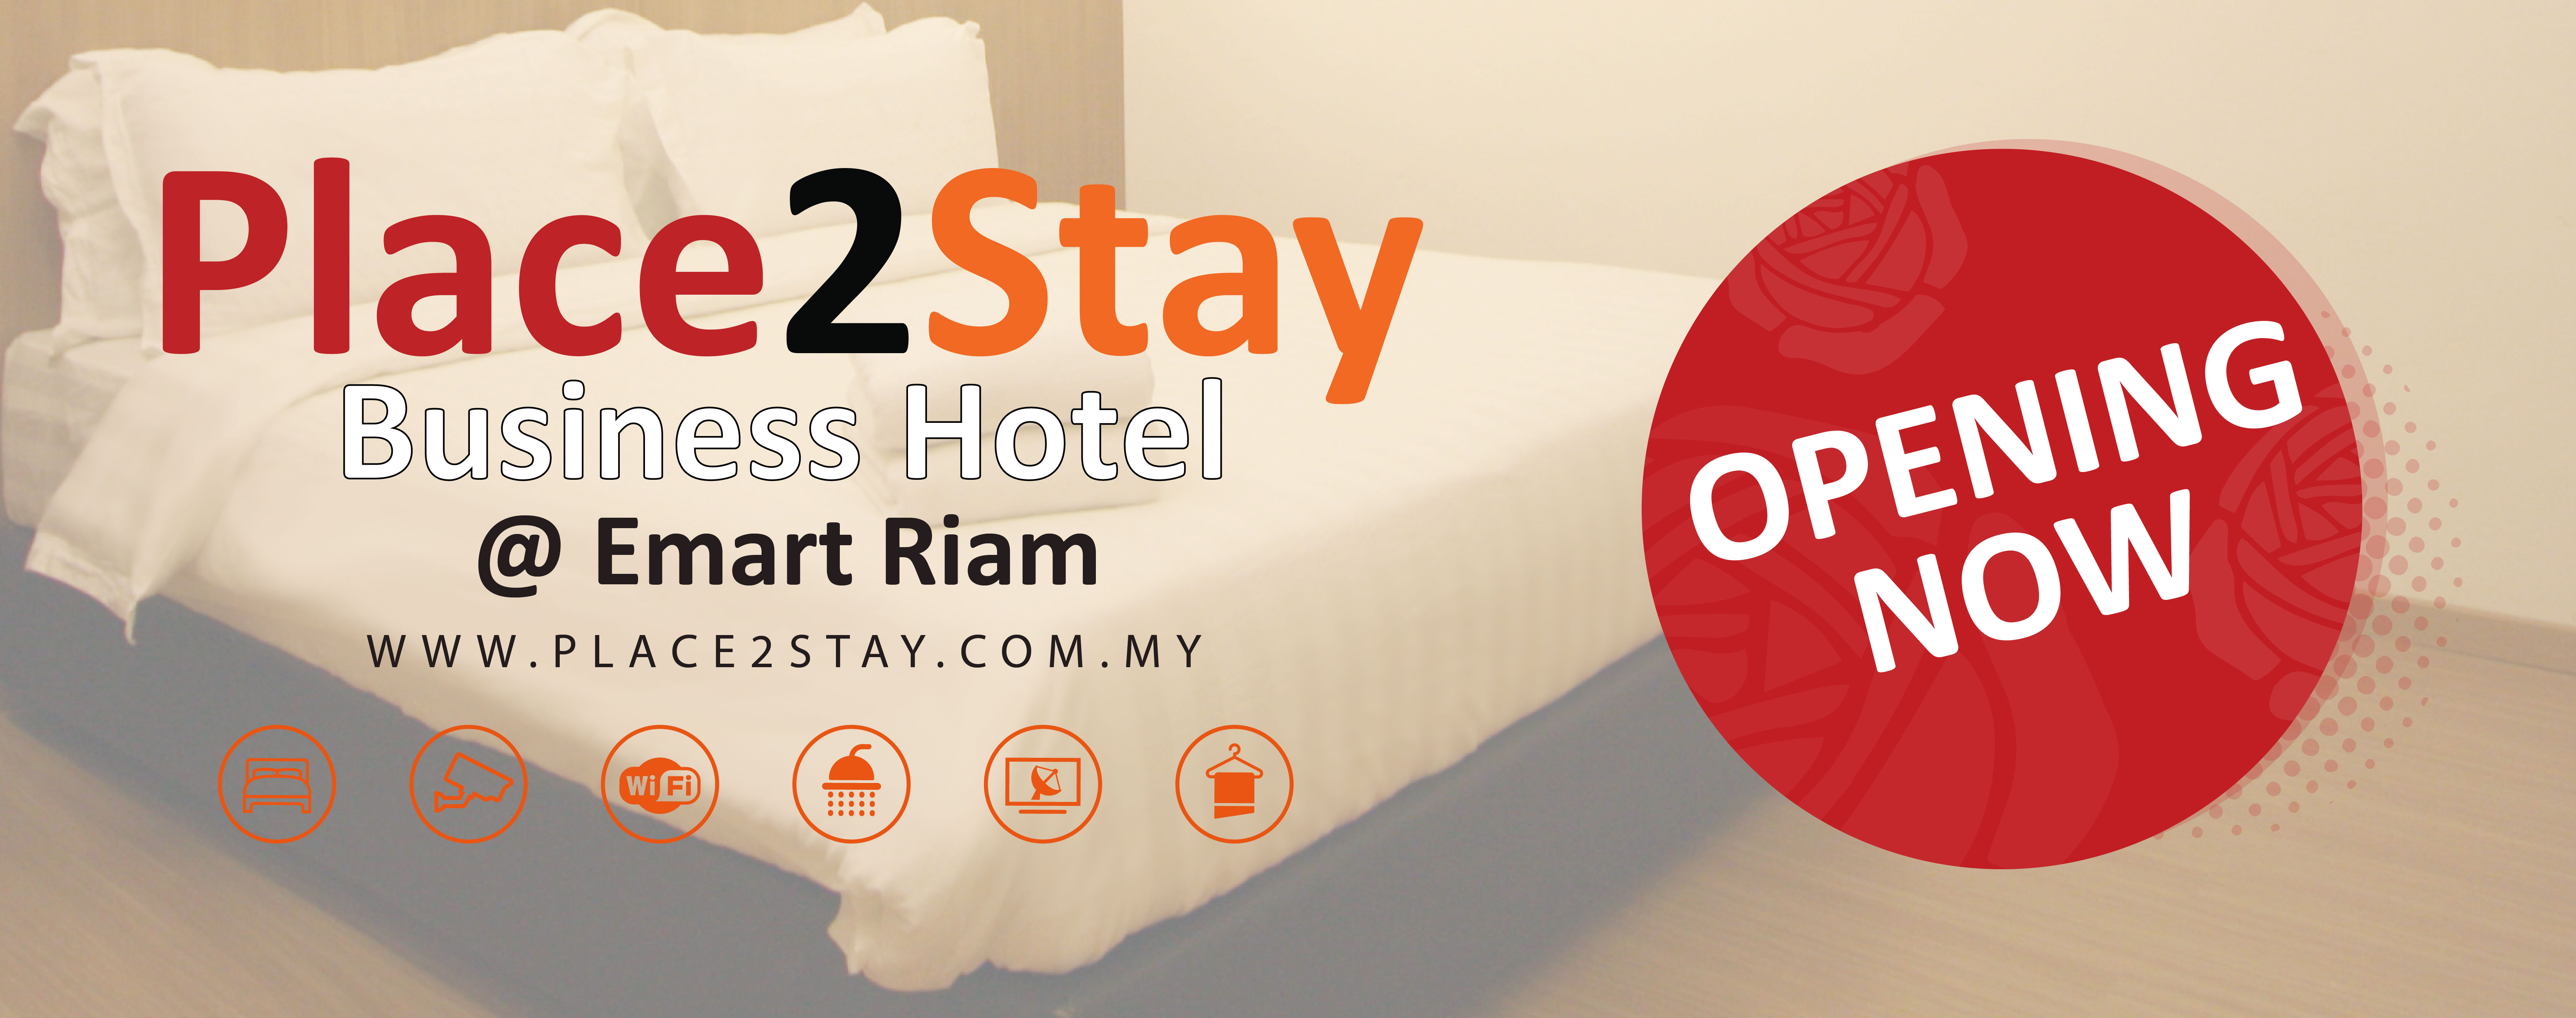 Place2Stay Business Hotel @ Emart Riam